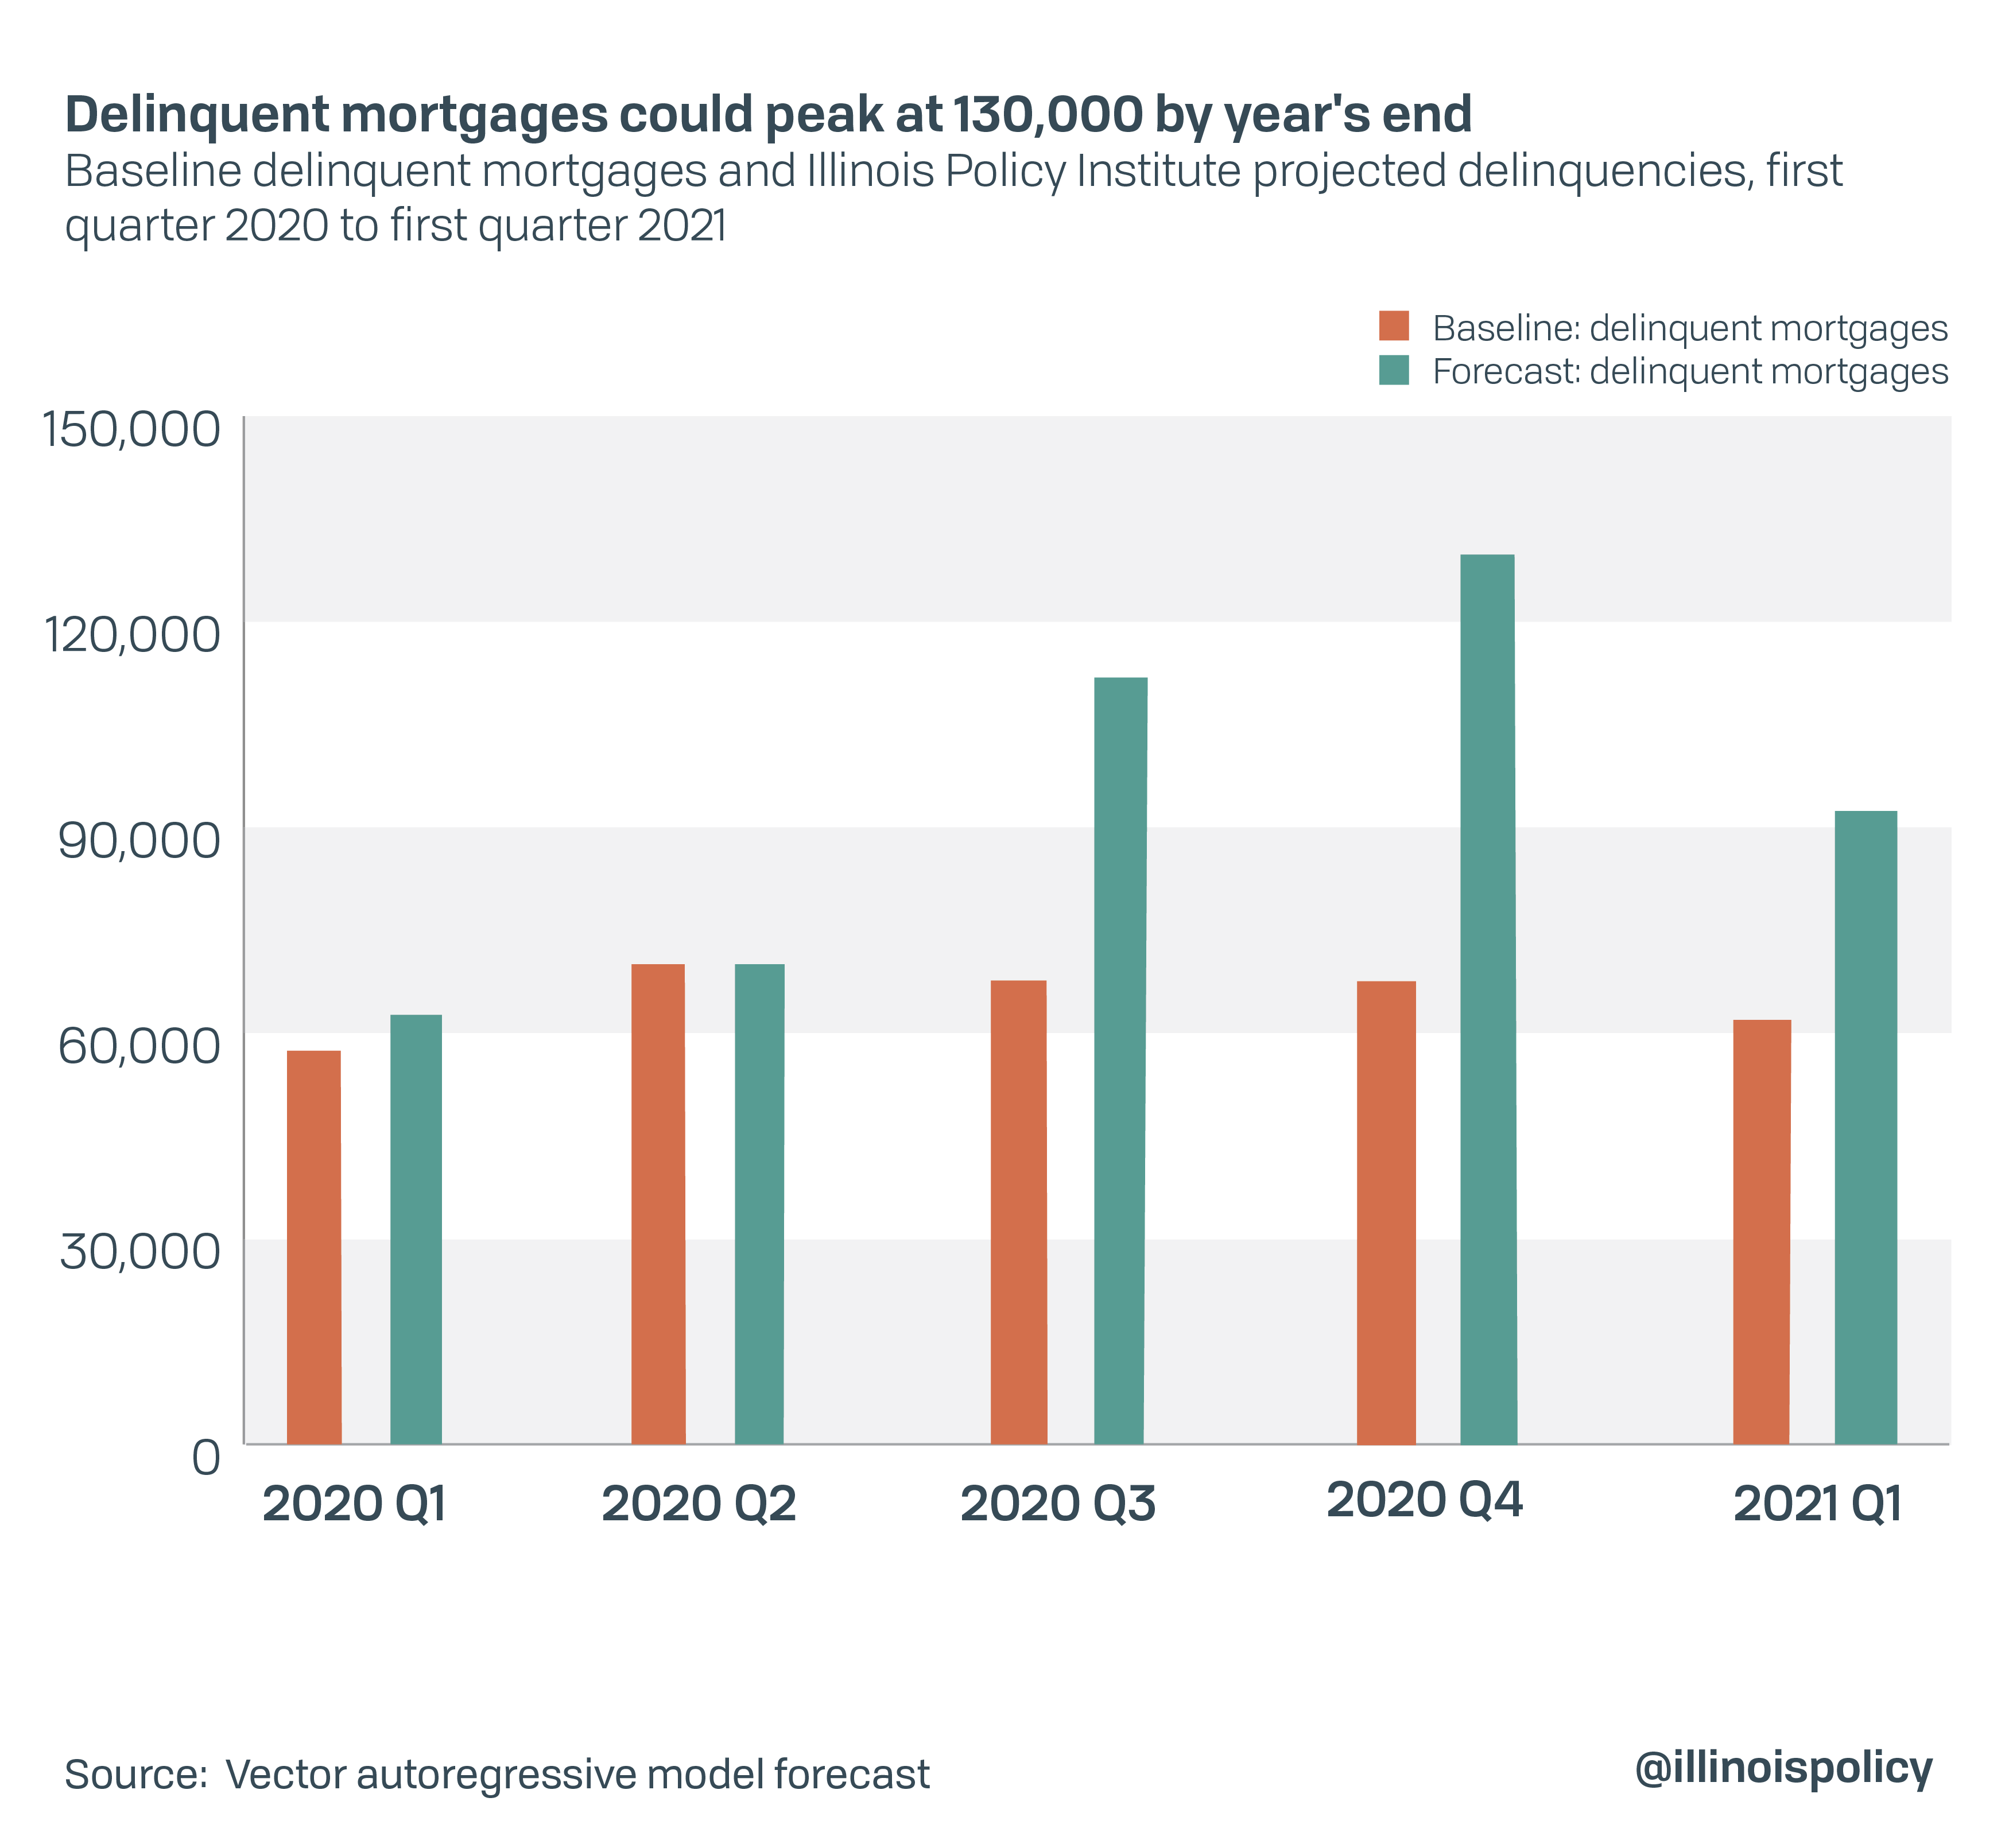 Delinquent mortgages could peak at 130,000 by year's end